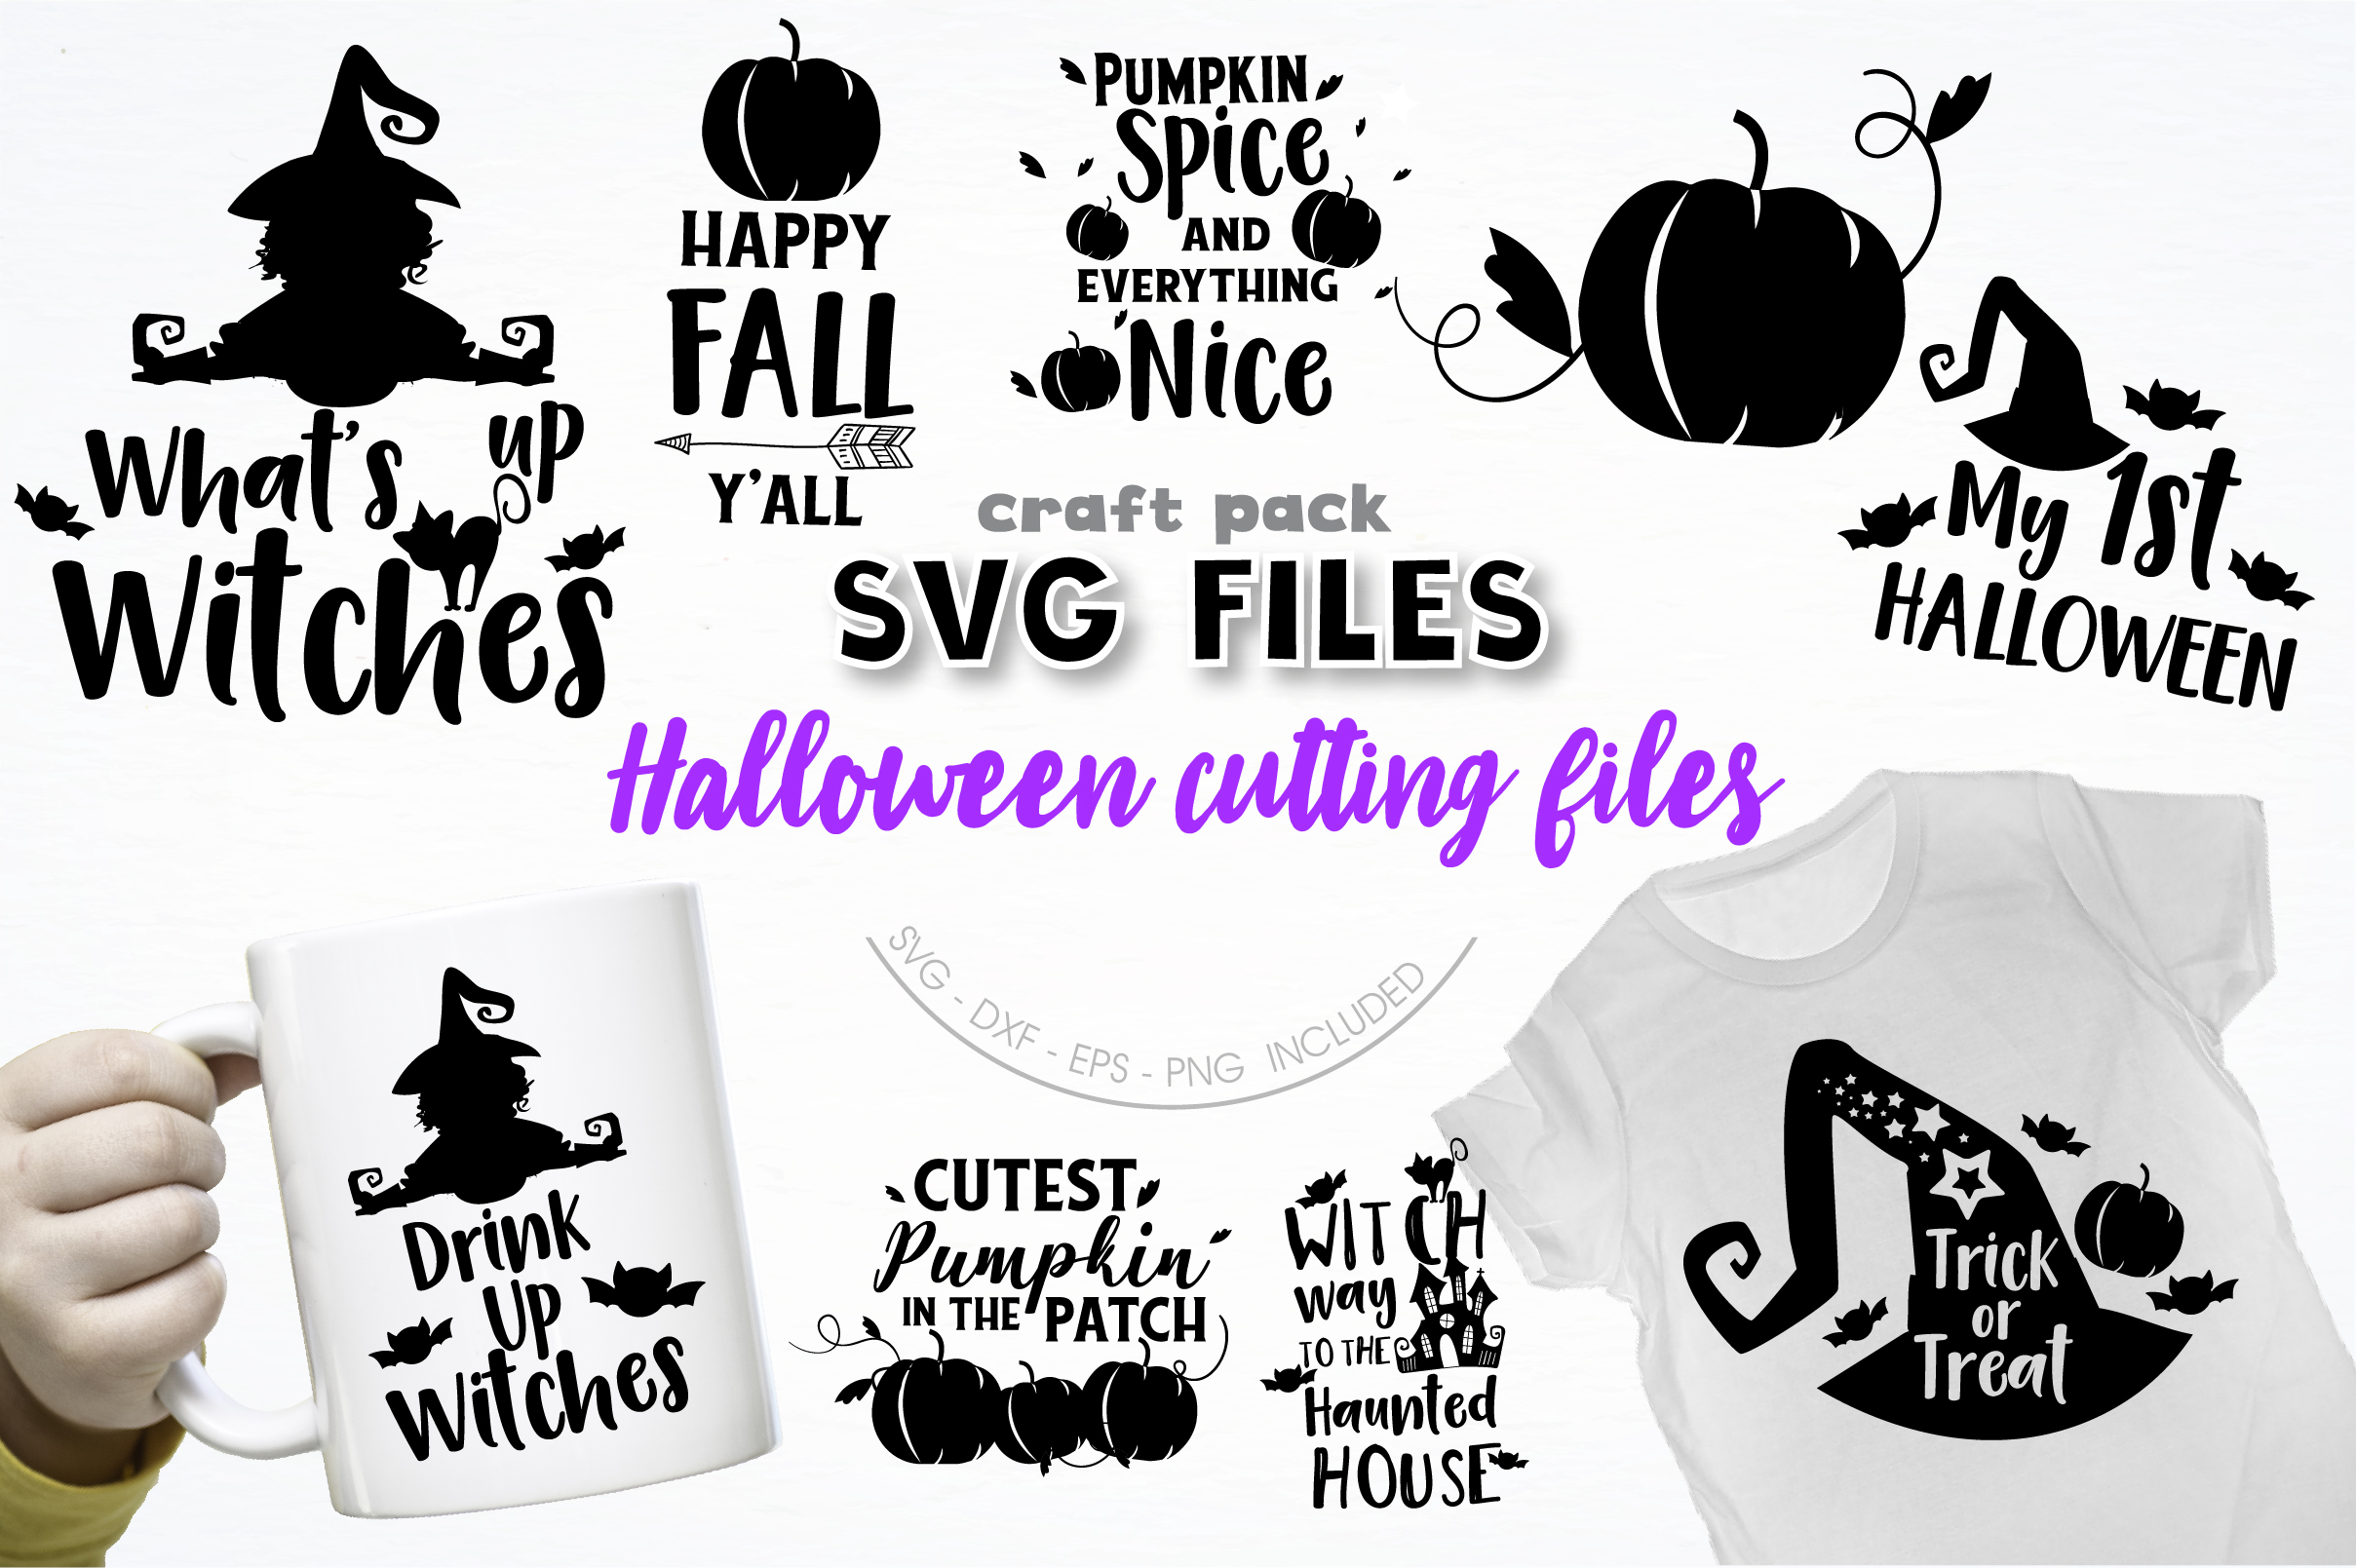 Download Free Pretty Cuttables Halloween Cut Files Graphic By Prettycuttables for Cricut Explore, Silhouette and other cutting machines.